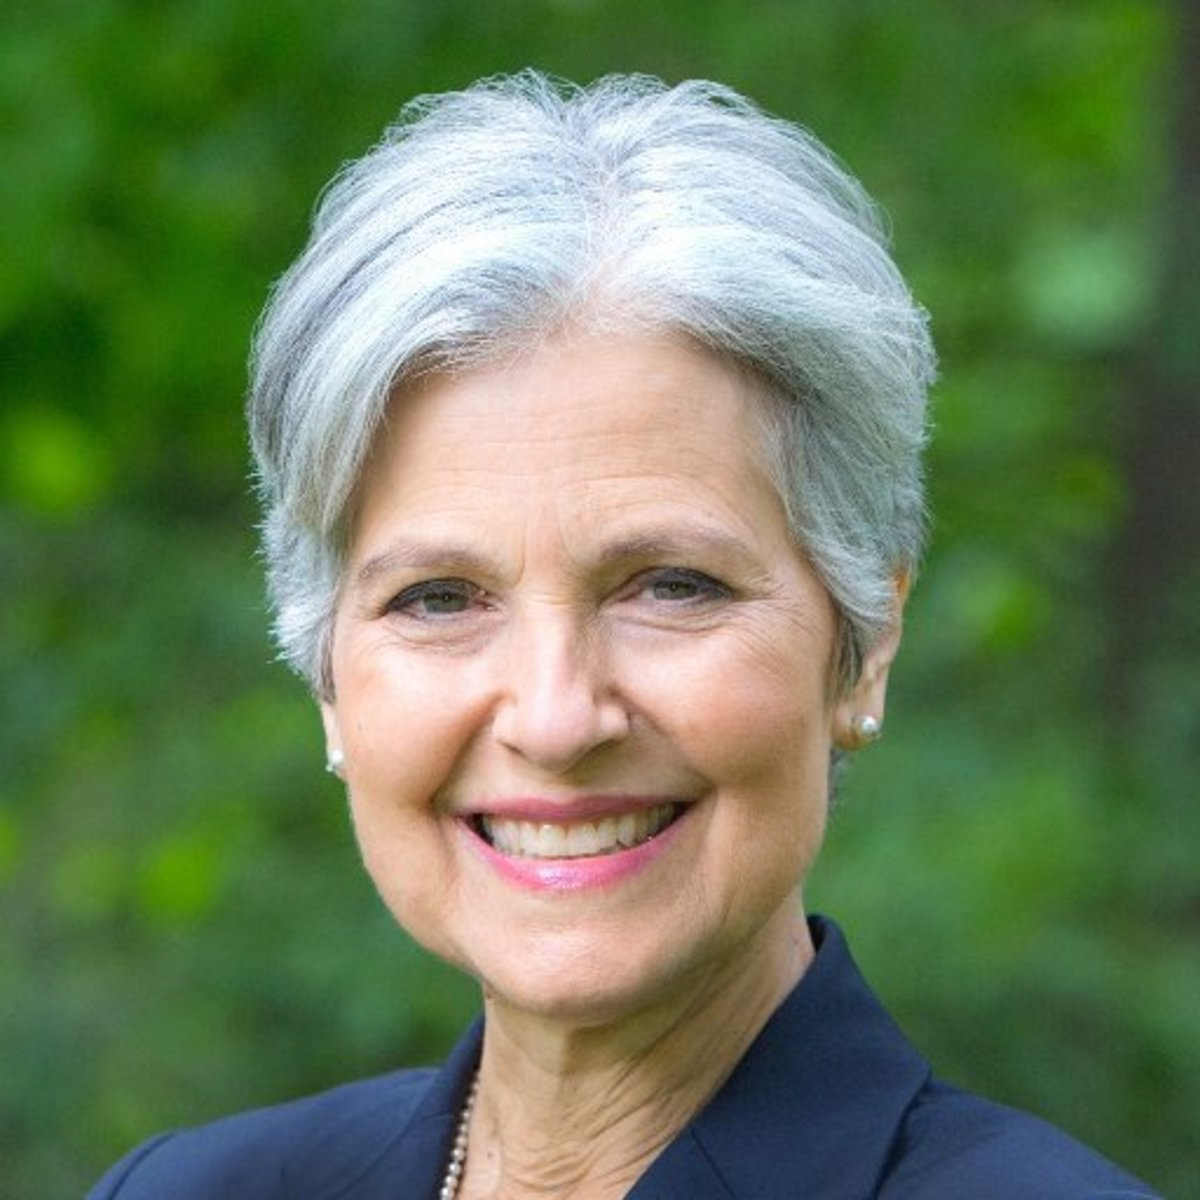 Why Doesn't Jill Stein Propose the Solution to the Election Integrity Problem?